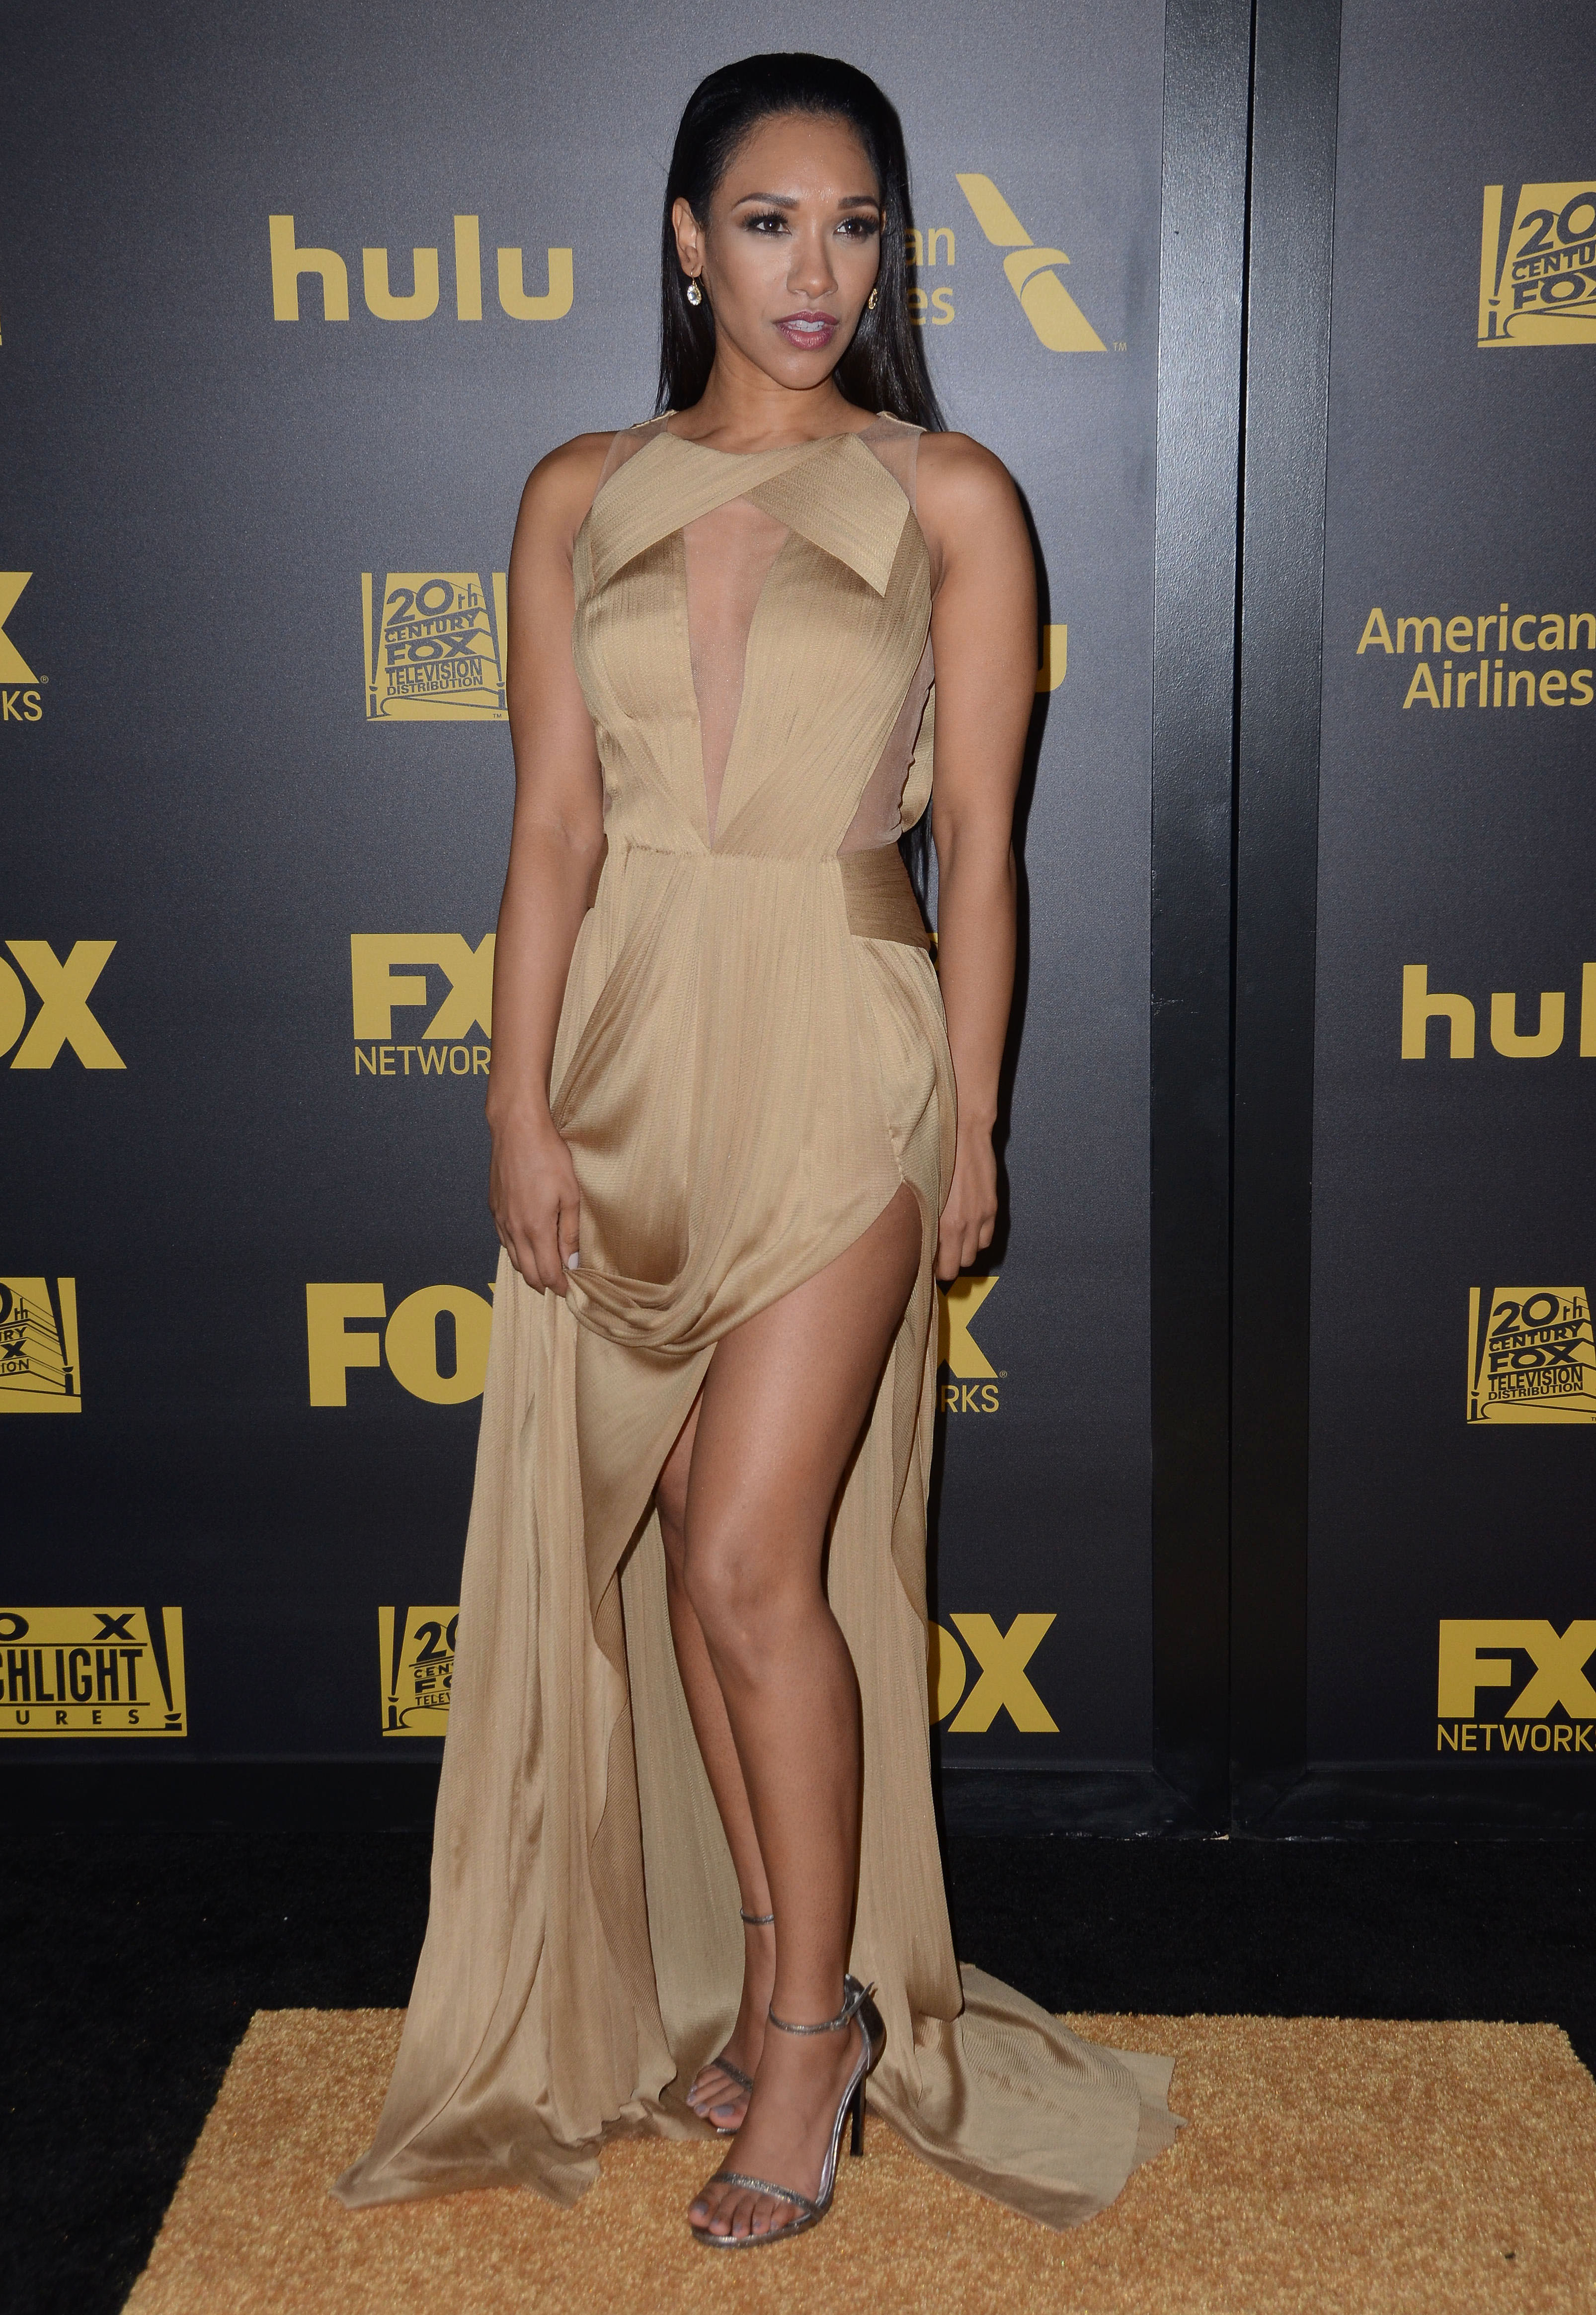 FOX Golden Globes Awards Party 2016 Sponsored by American Airlines